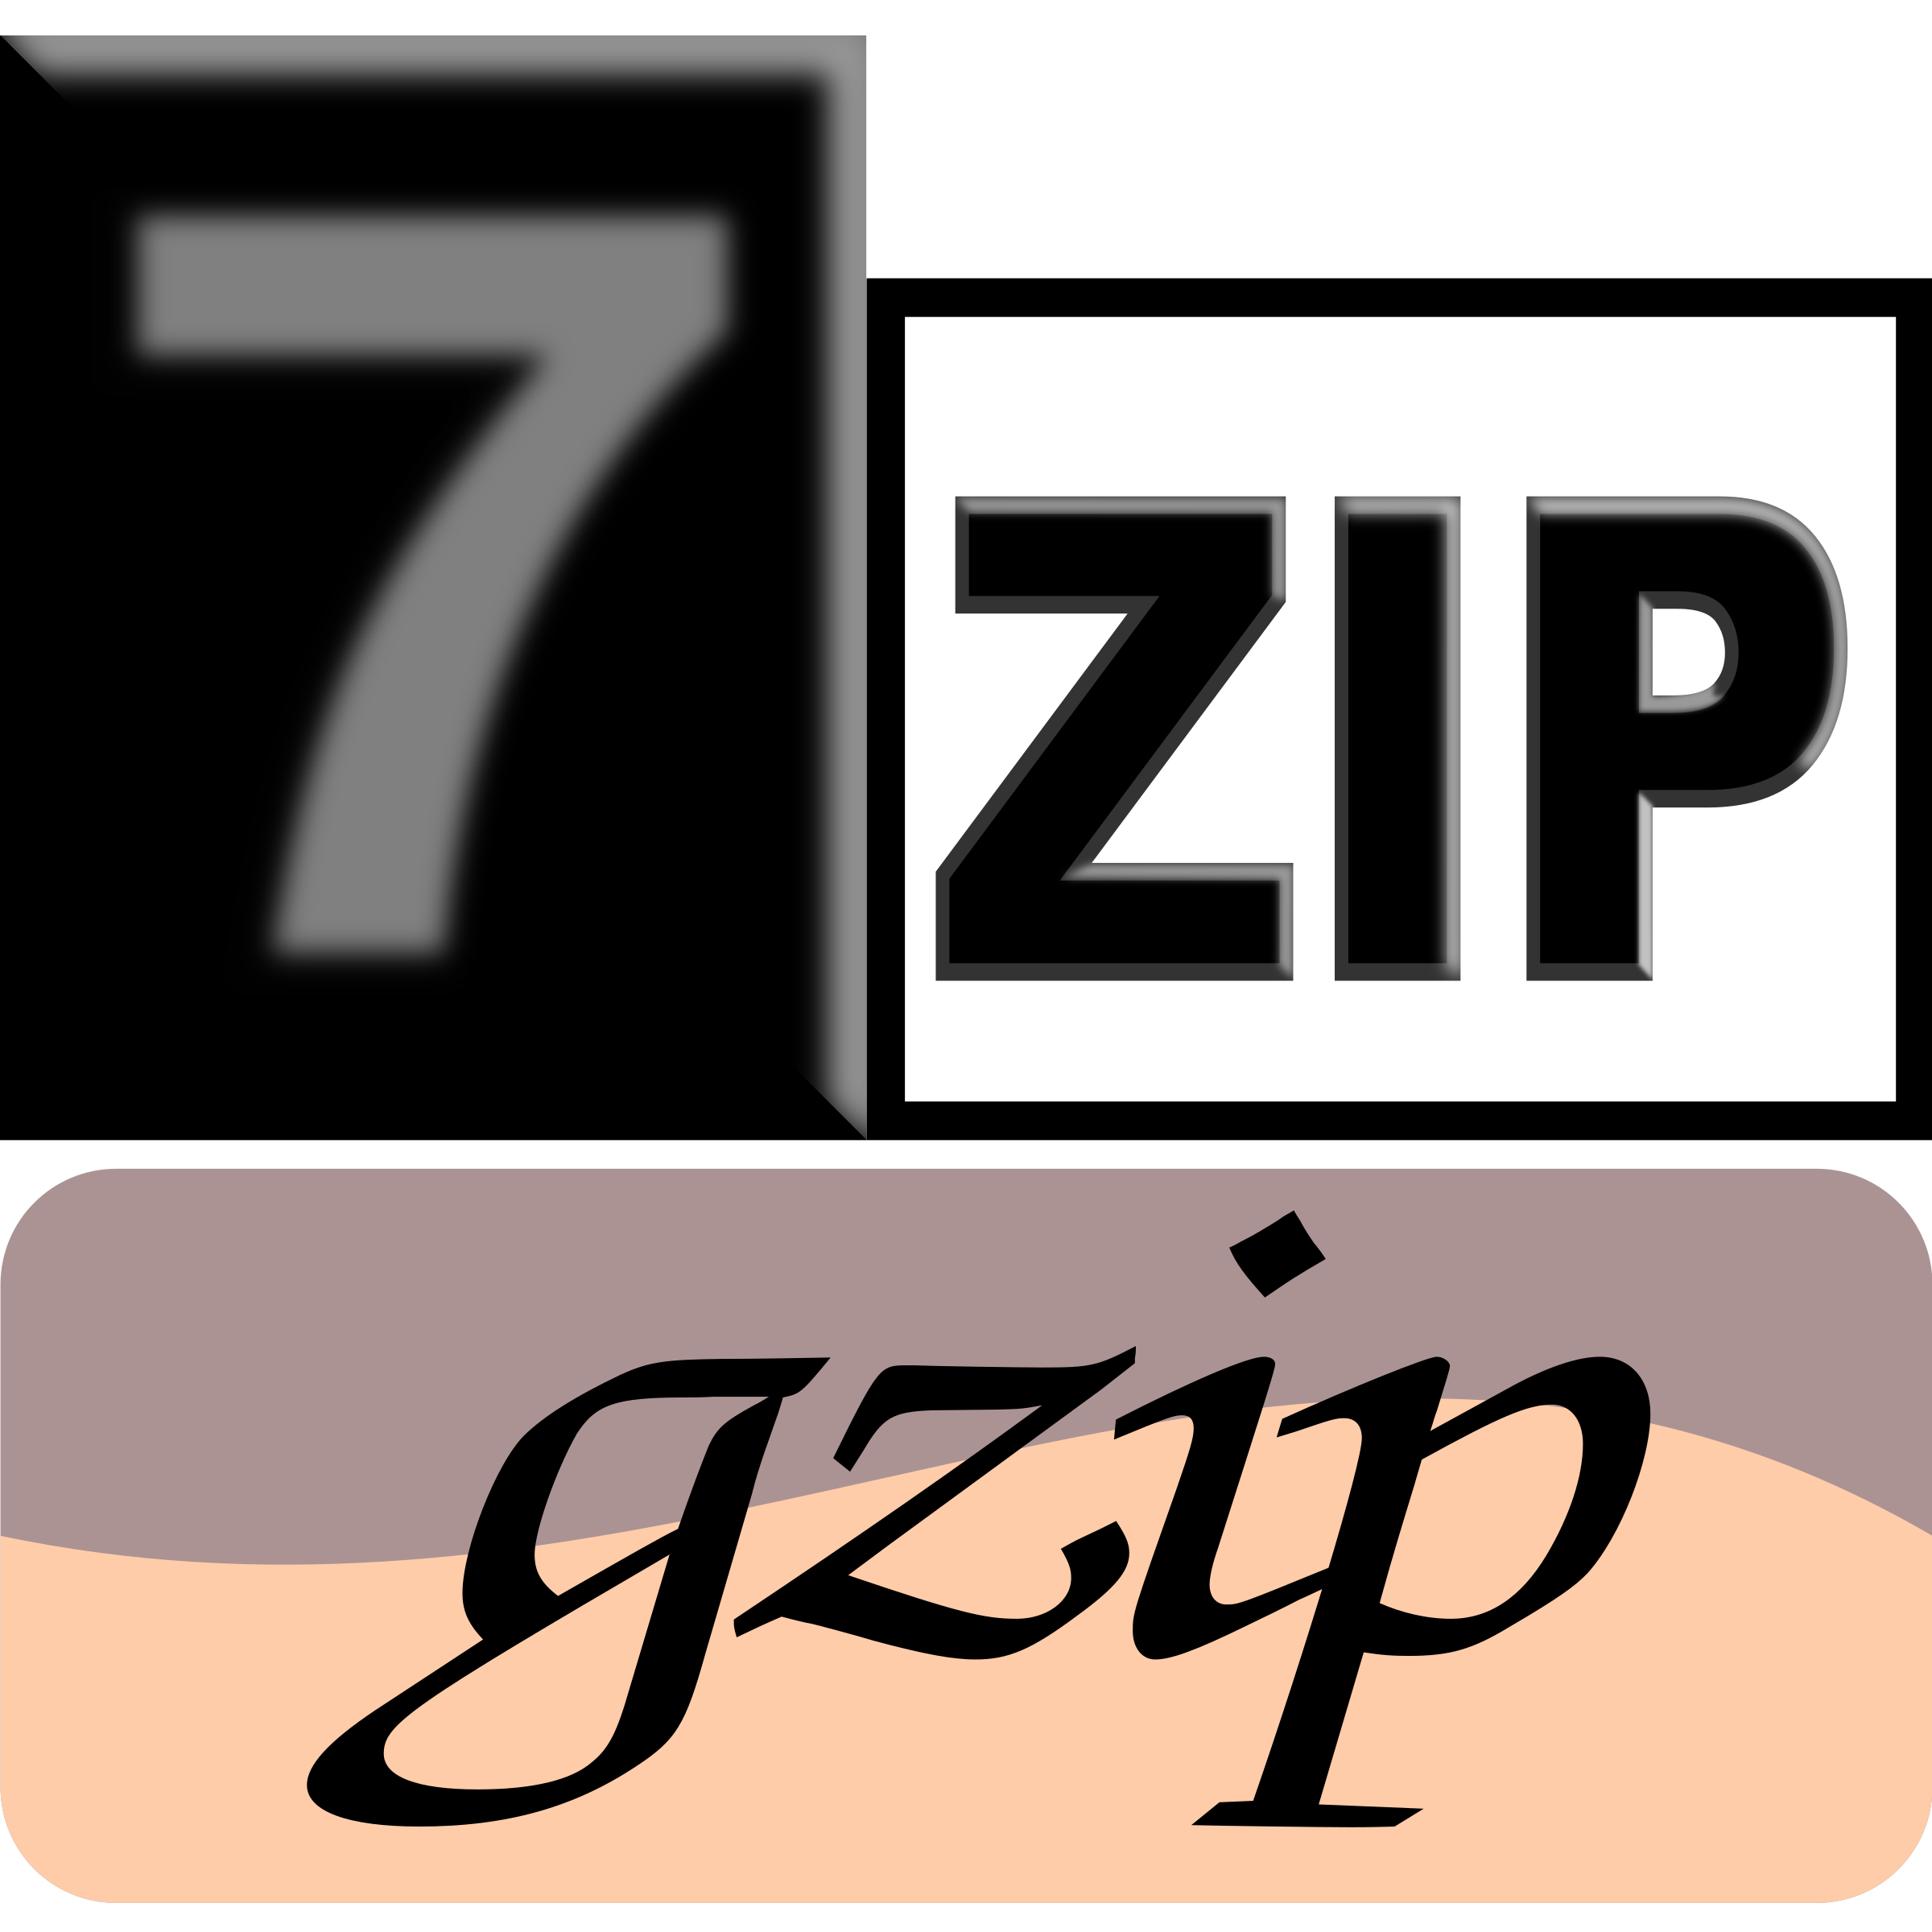 7zipClassic-gzip by kg